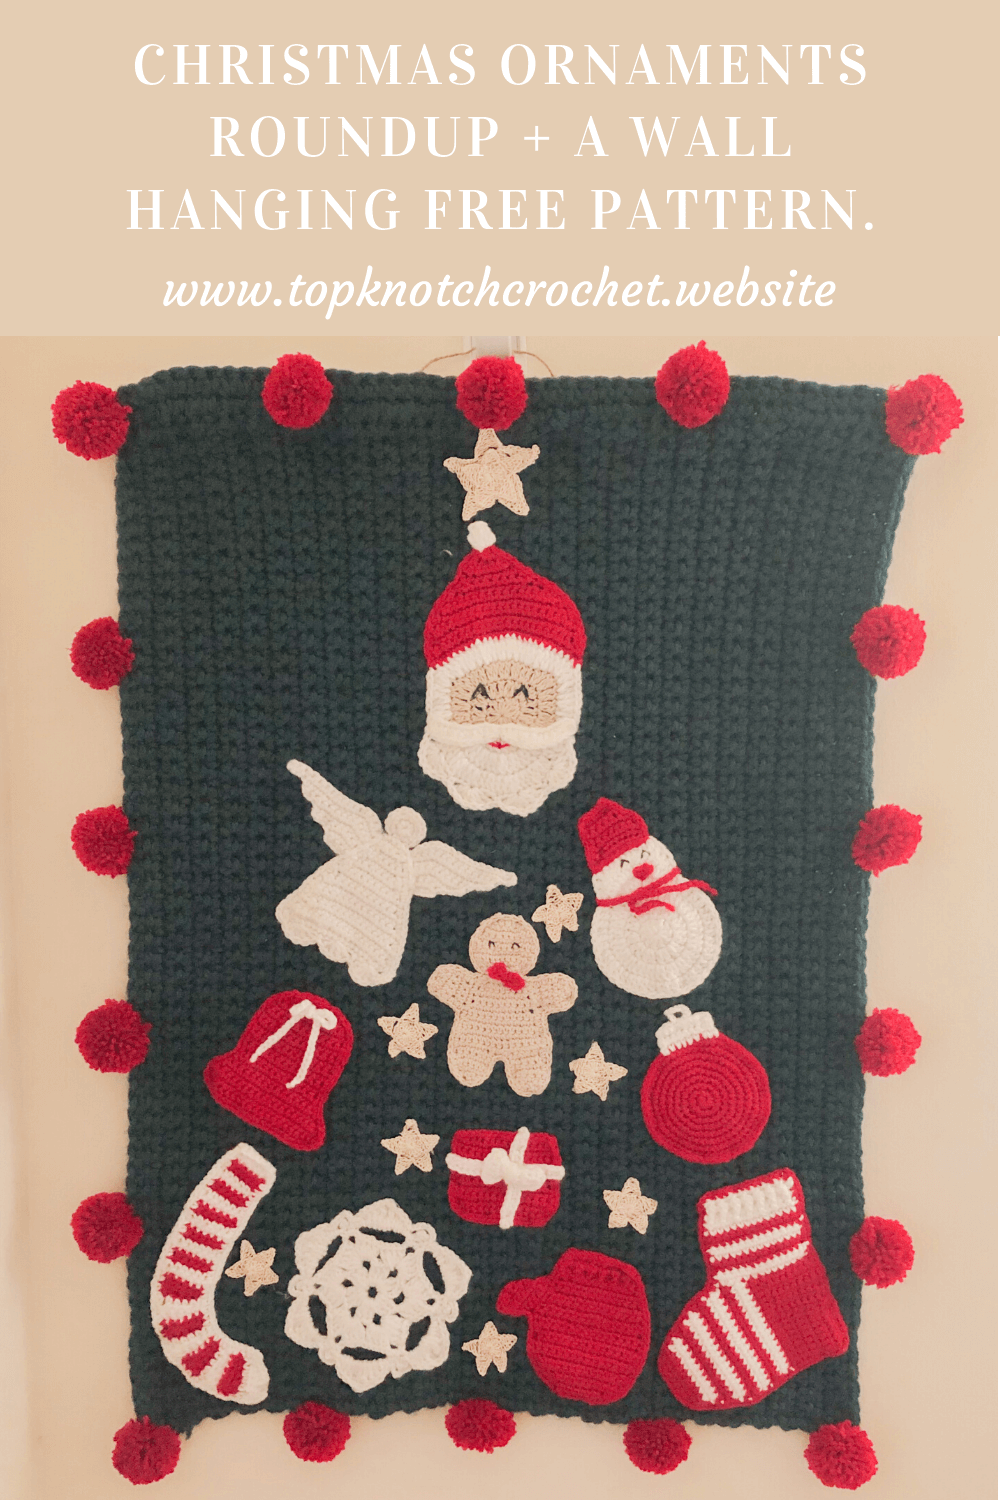 Christmas Ornaments Roundup Plus a Wall Hanging Free Pattern.